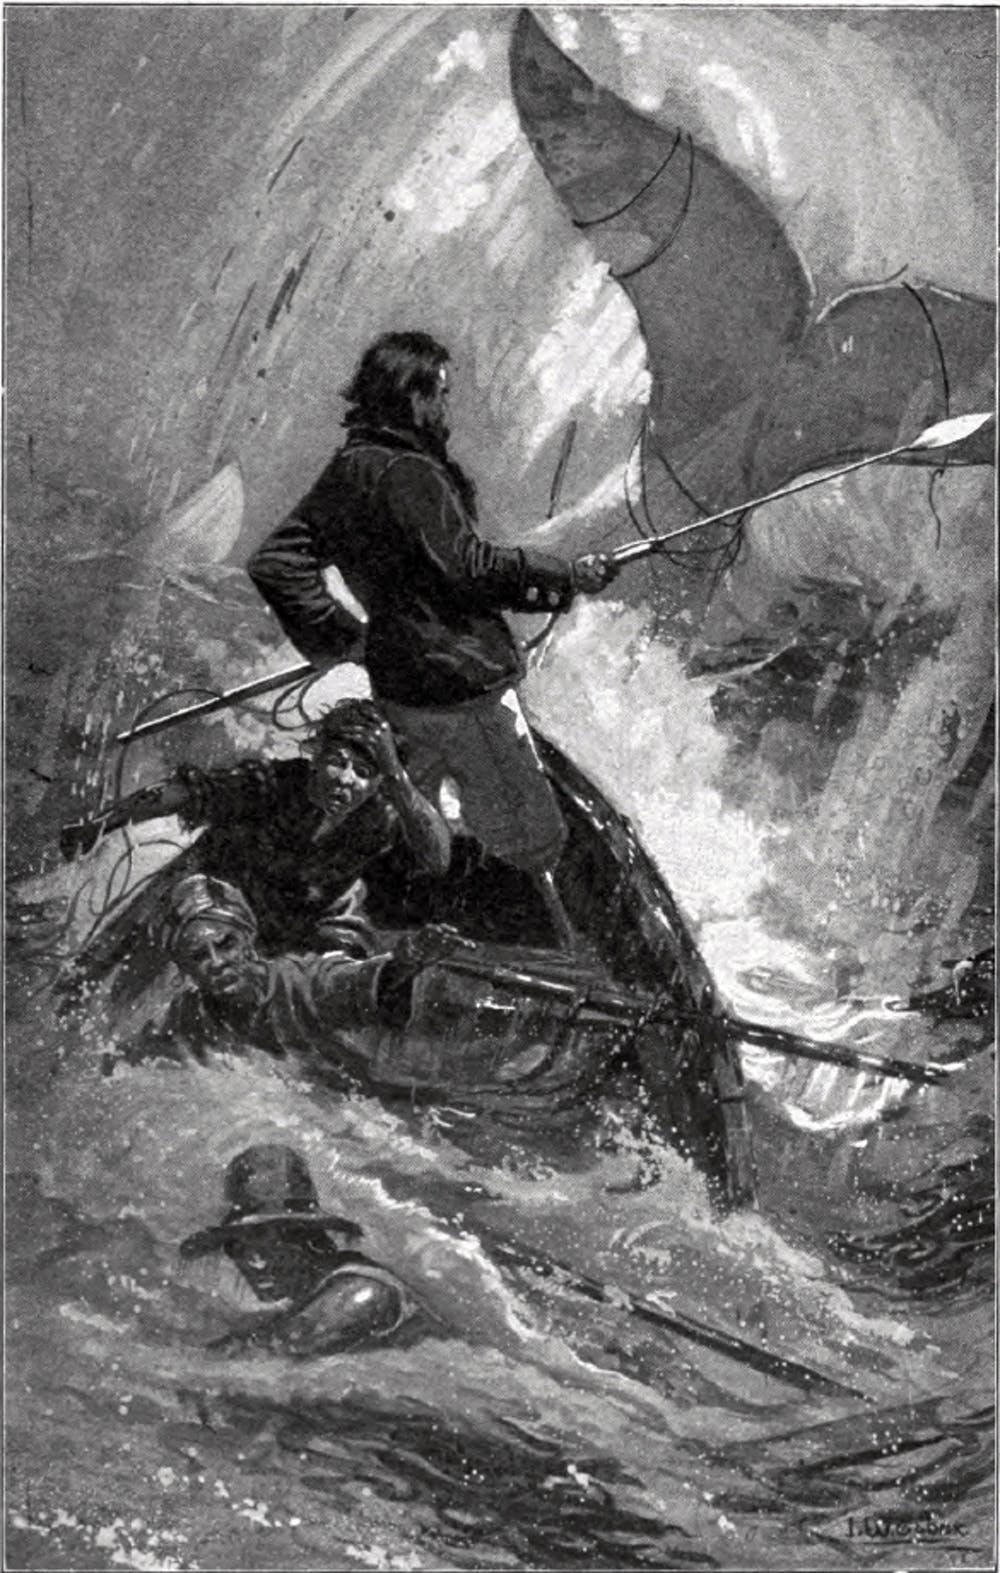 friday essay the rise and fall of oil in popular culture the final chase of moby dick i w taber